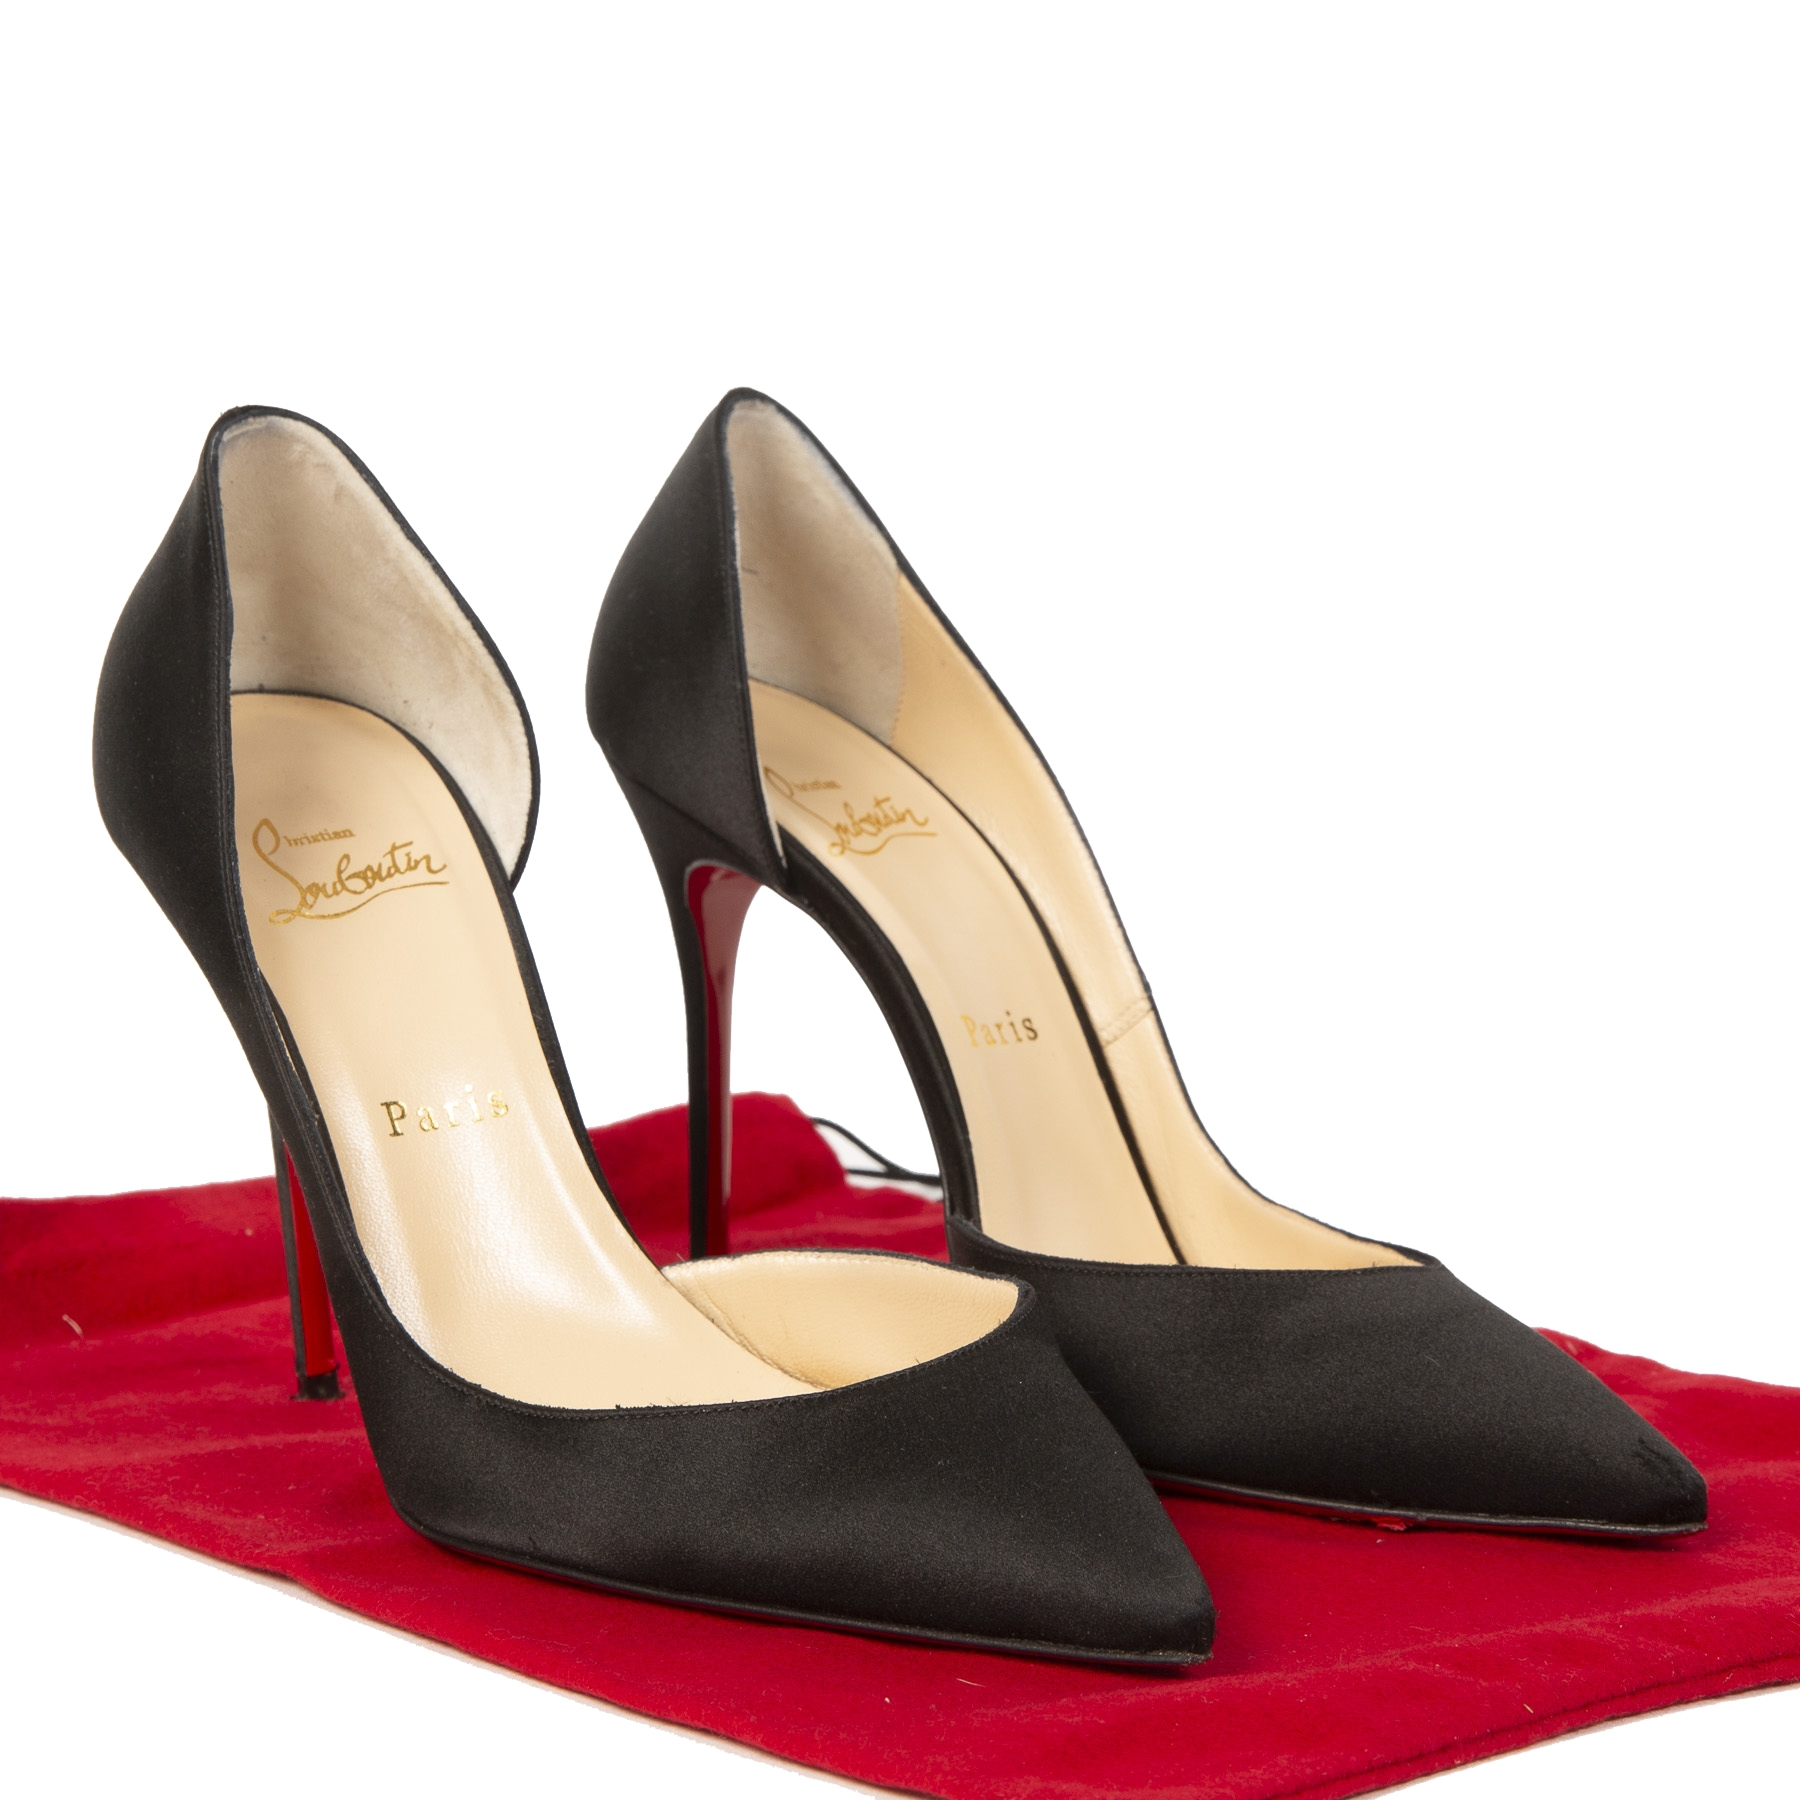 Christian Louboutin Black Satin Iriza 100 Pumps - size 39.5